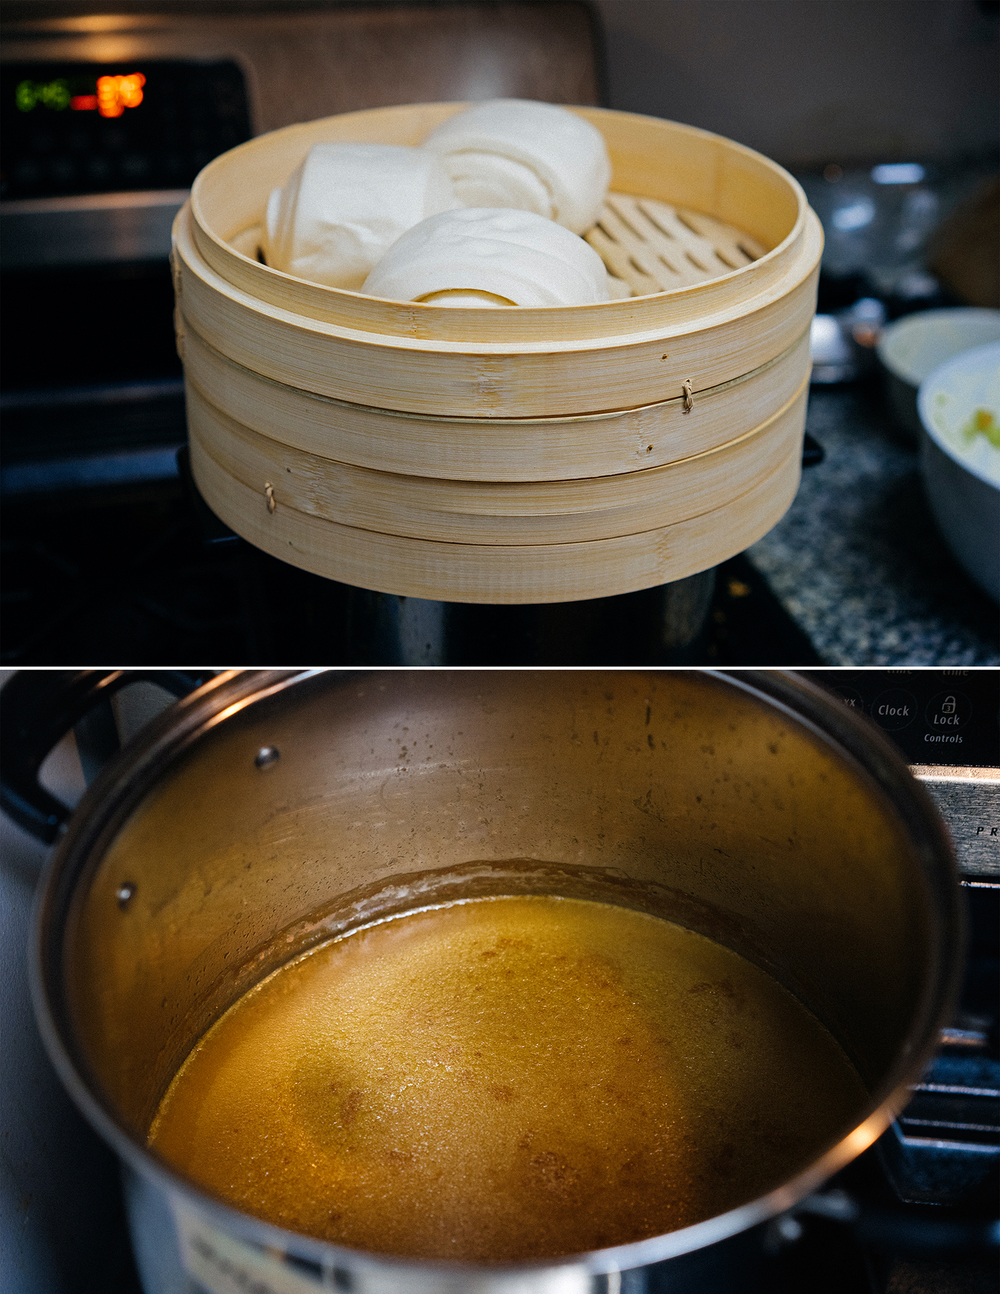 Steaming buns and a pot full of ramen broth